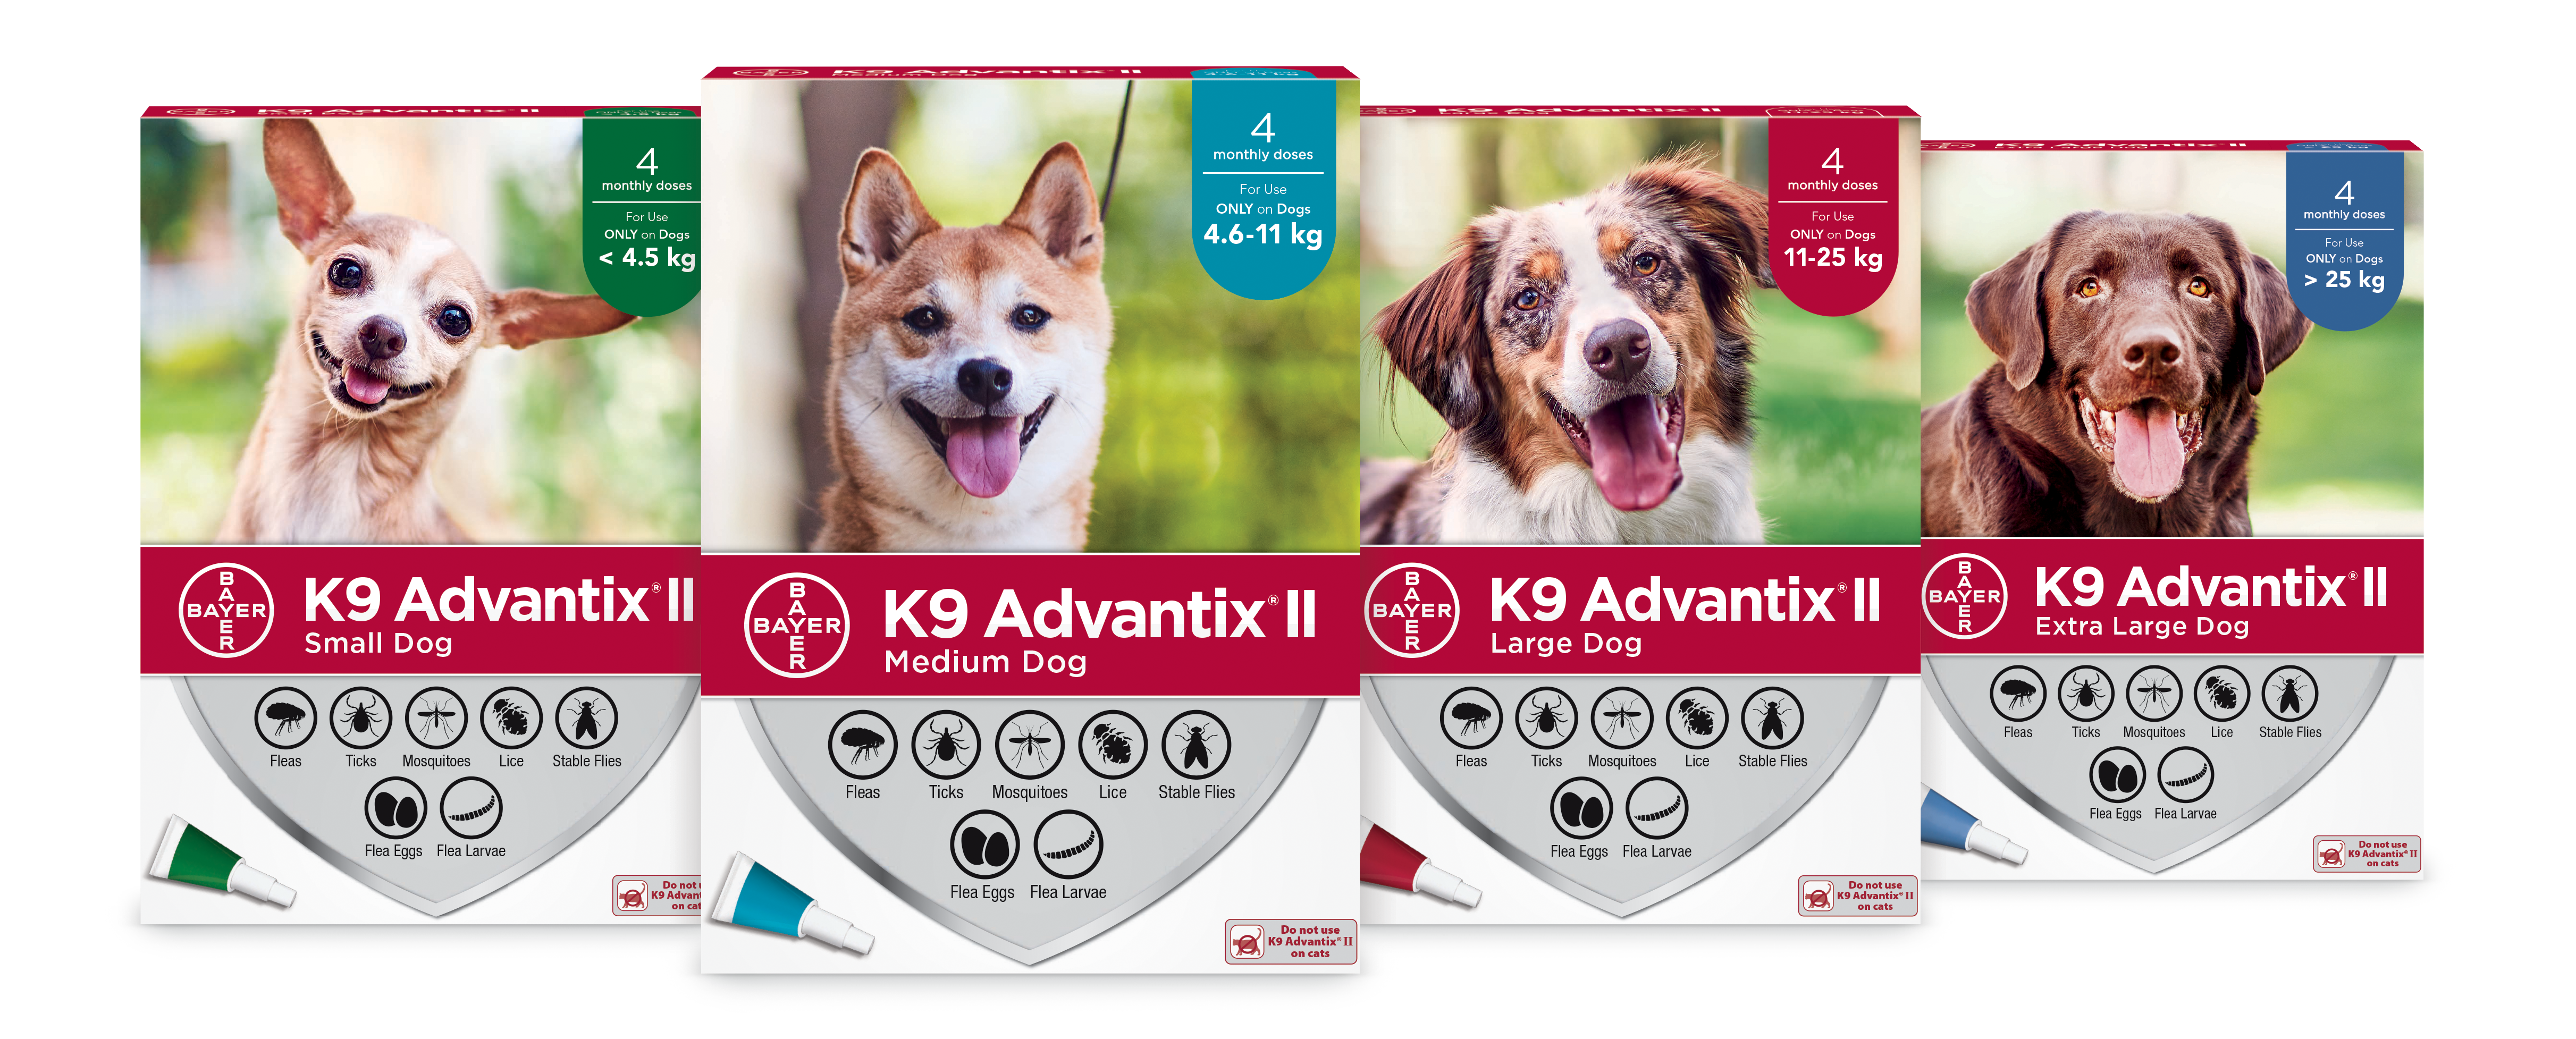 K9 Advantix®II treats fleas, ticks, lice, mosquitoes and stable flies